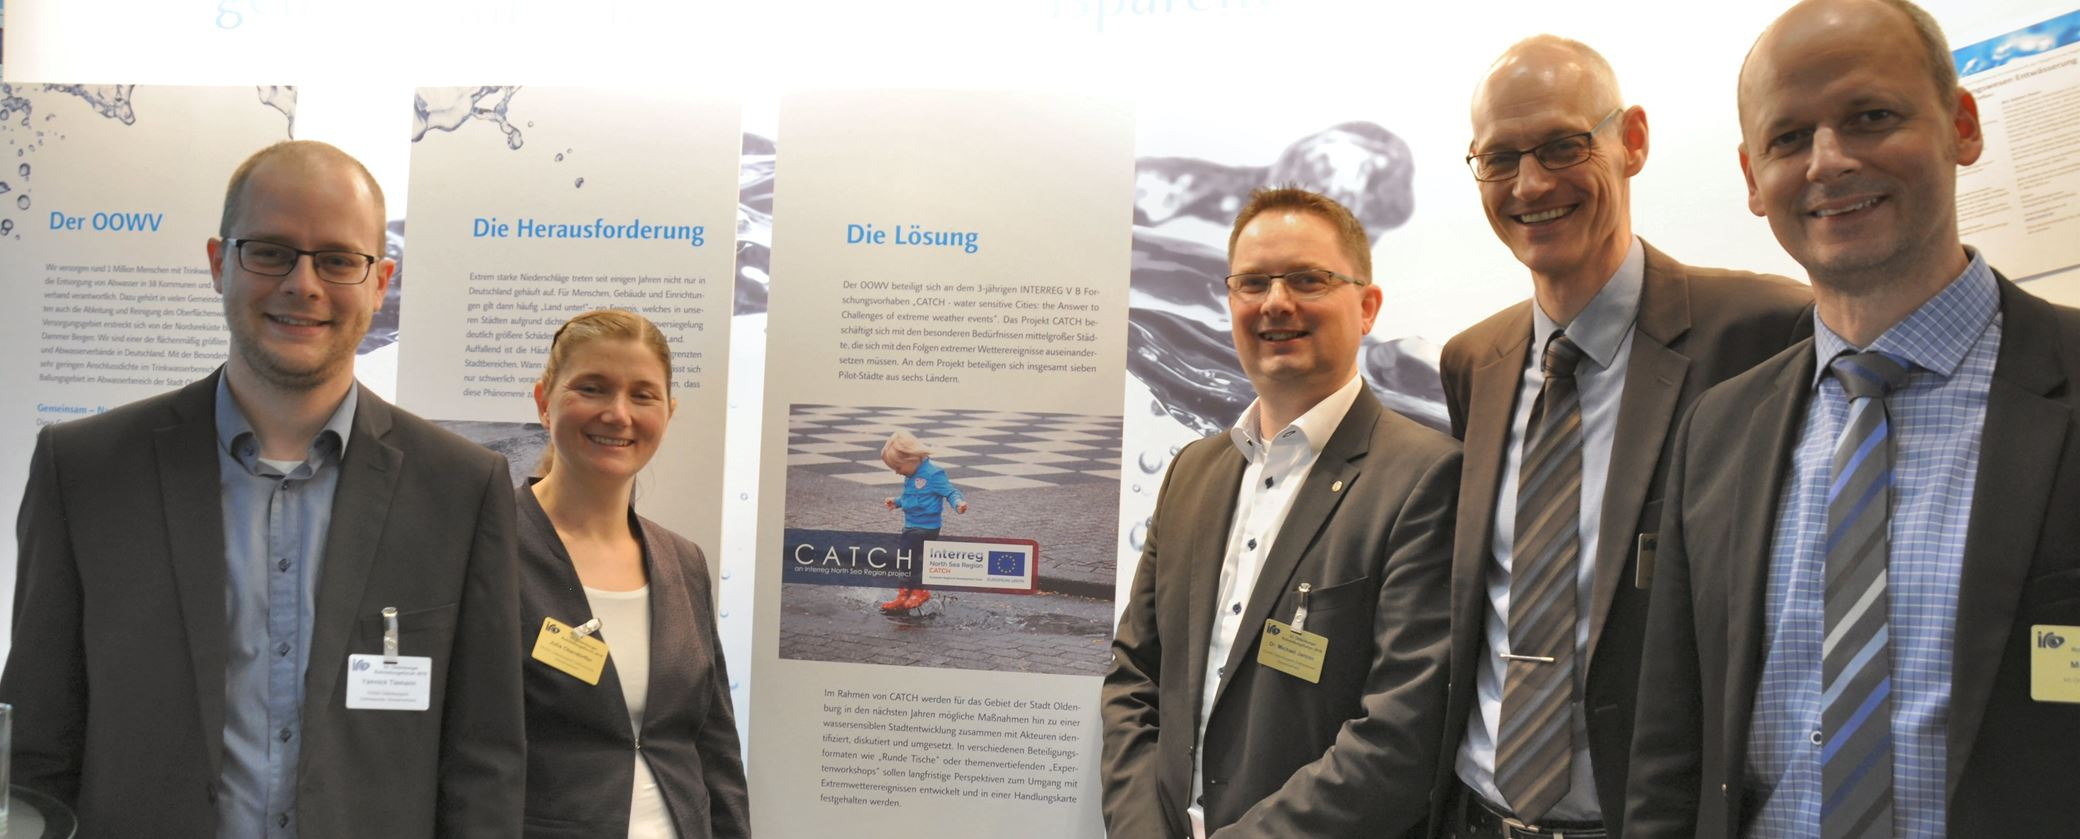 CATCH project present at the 33rd Oldenburg Pipeline Forum, Interreg